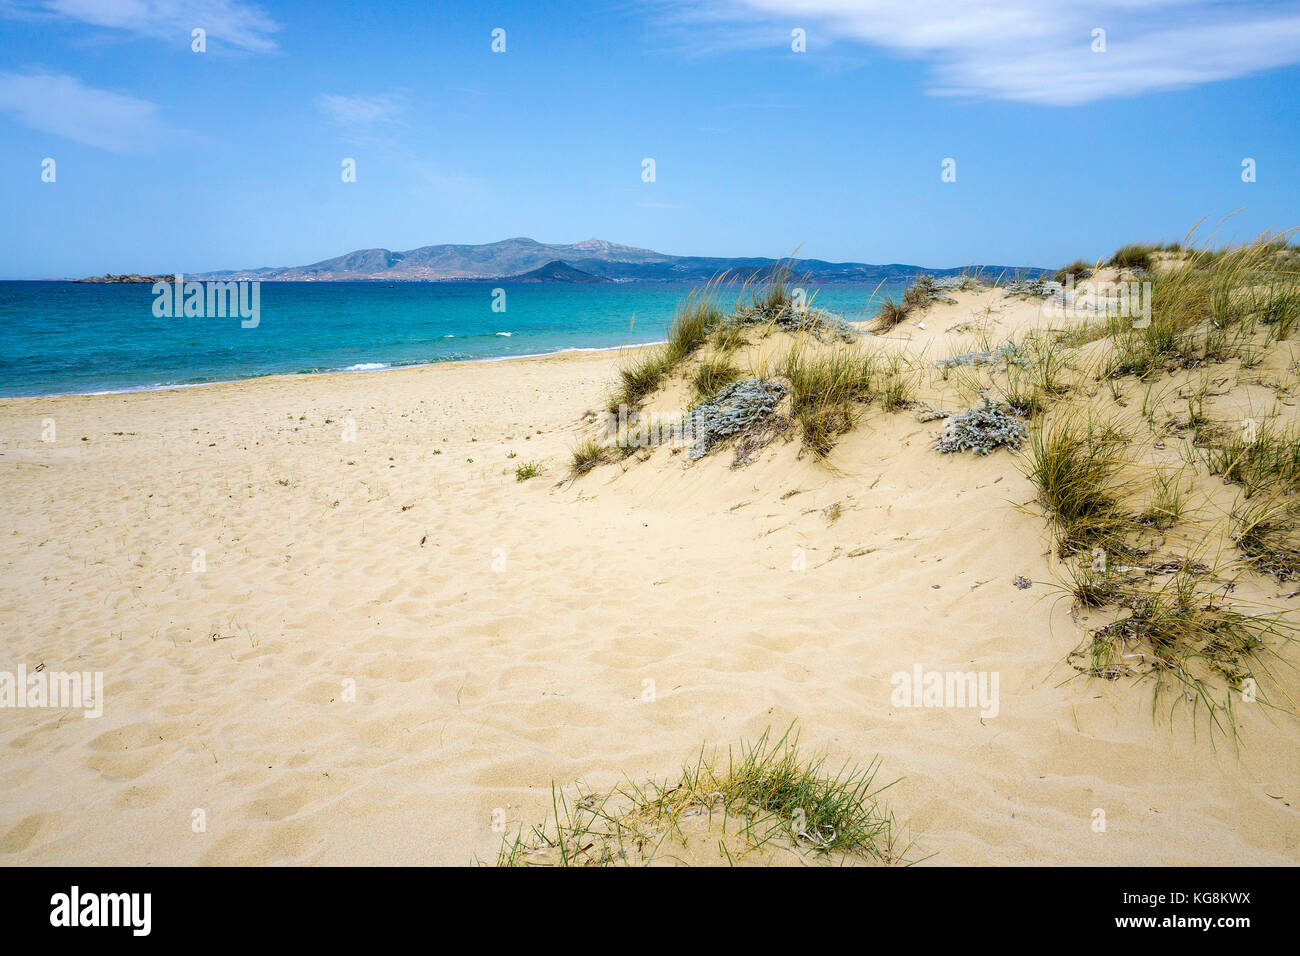 Dunes at Petrivo beach, west side of Naxos, Cyclades, Aegean, Greece - Stock Image